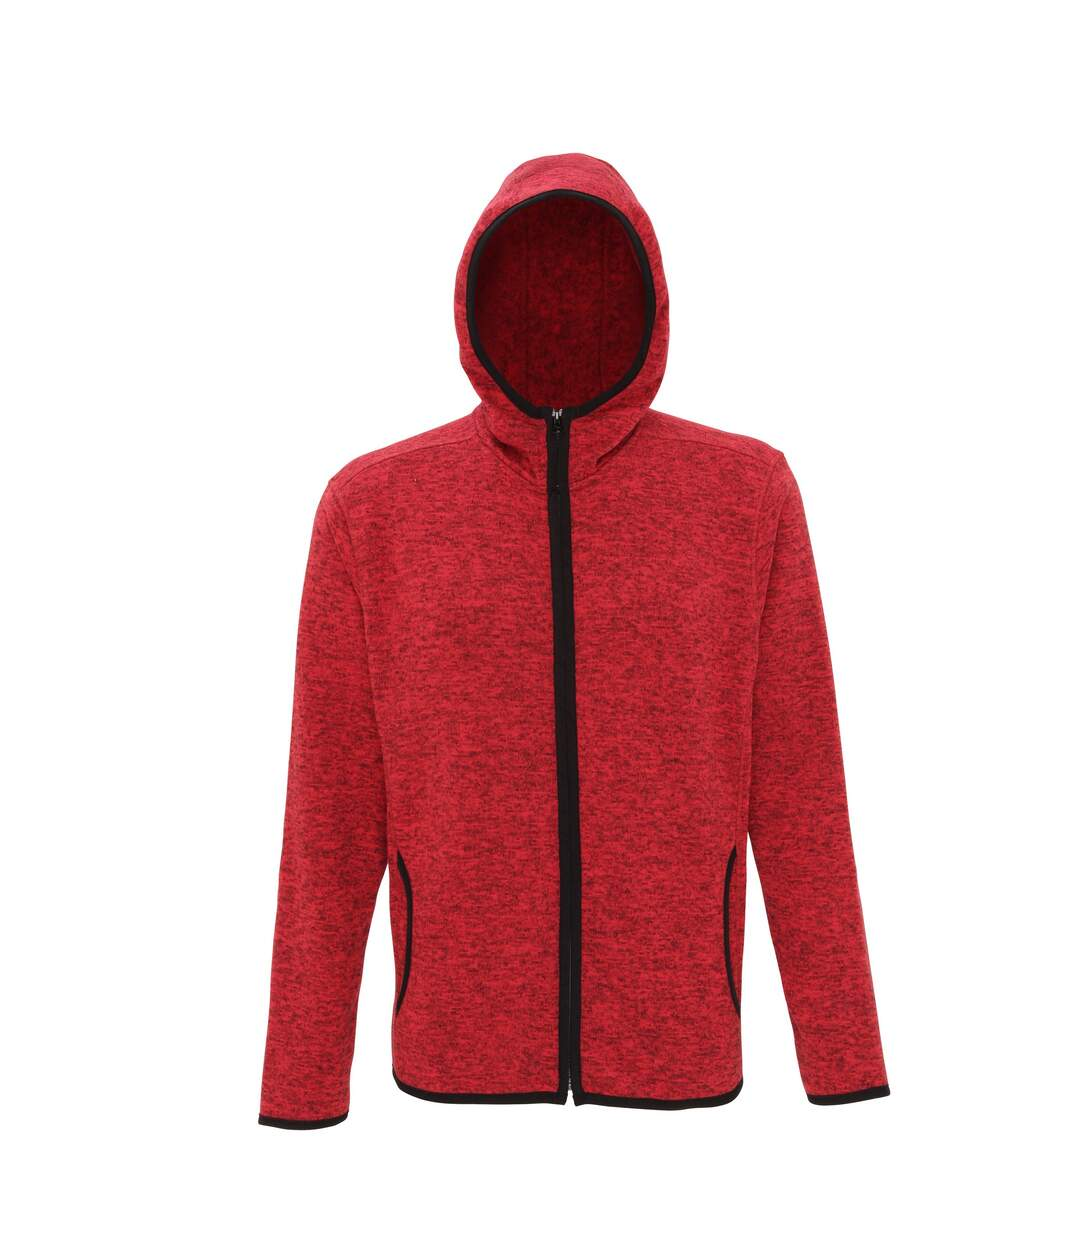 Tri Dri Mens Melange Knit Fleece Jacket (Fire Red/Black Fleck) - UTRW5459